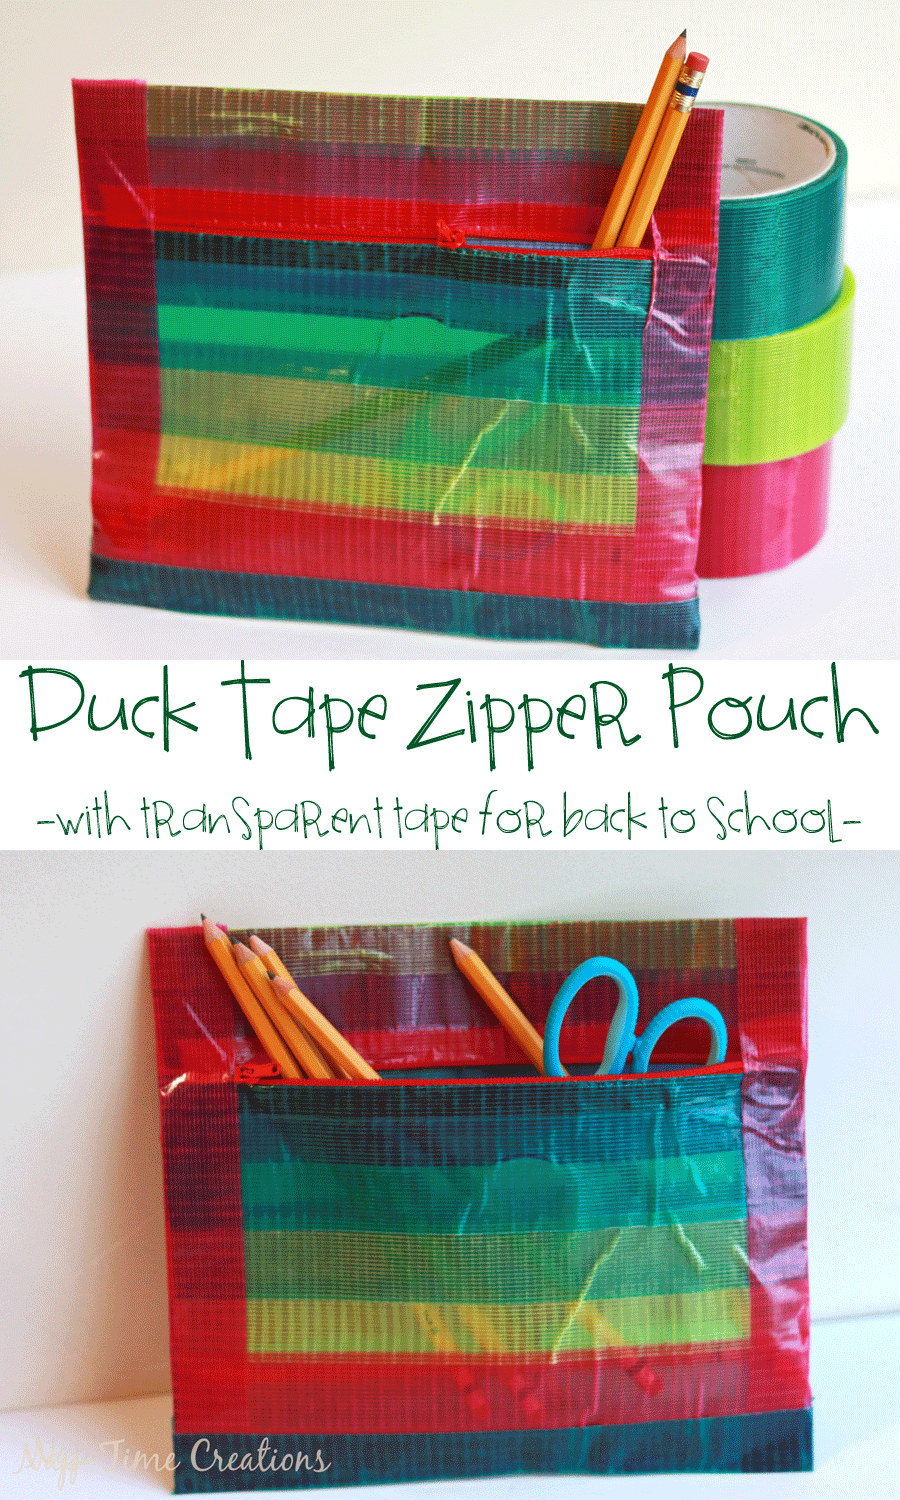 Duck Tape Zipper Pouch with-transparent-tape-a-no-sew-project-for-back-to-school